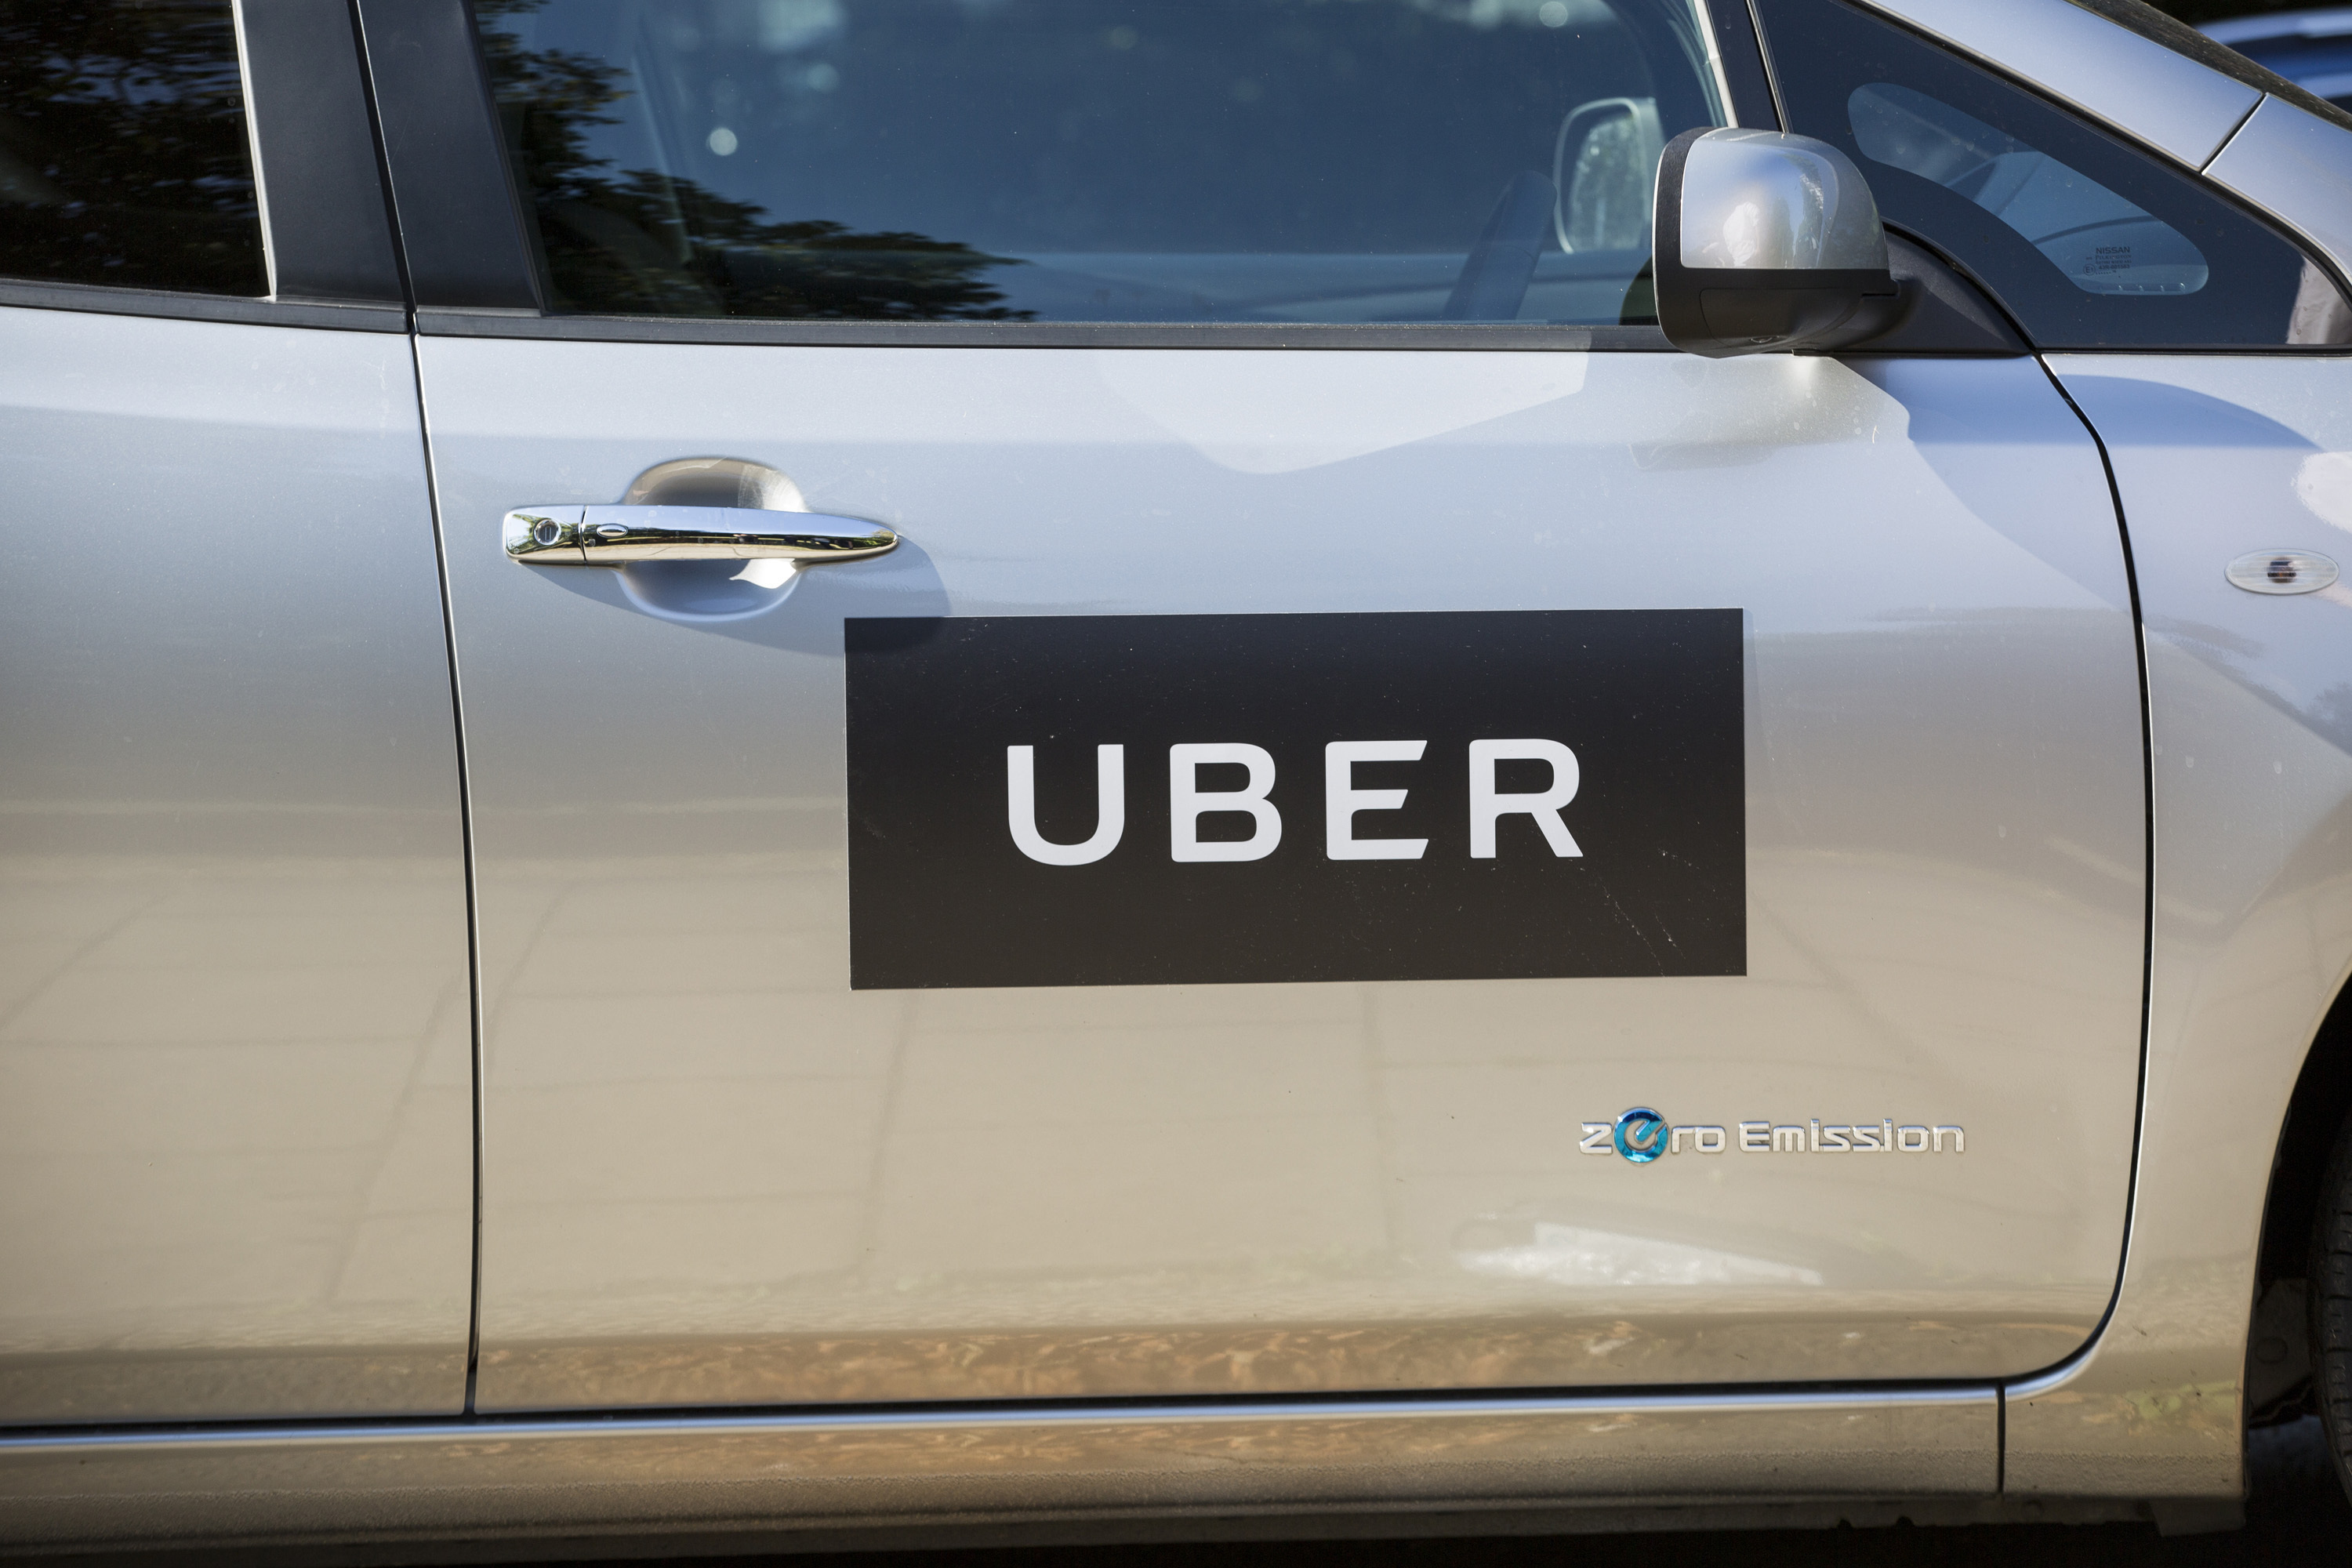 Uber is set to launch in Aberdeen (Laura Dale/PA Wire)